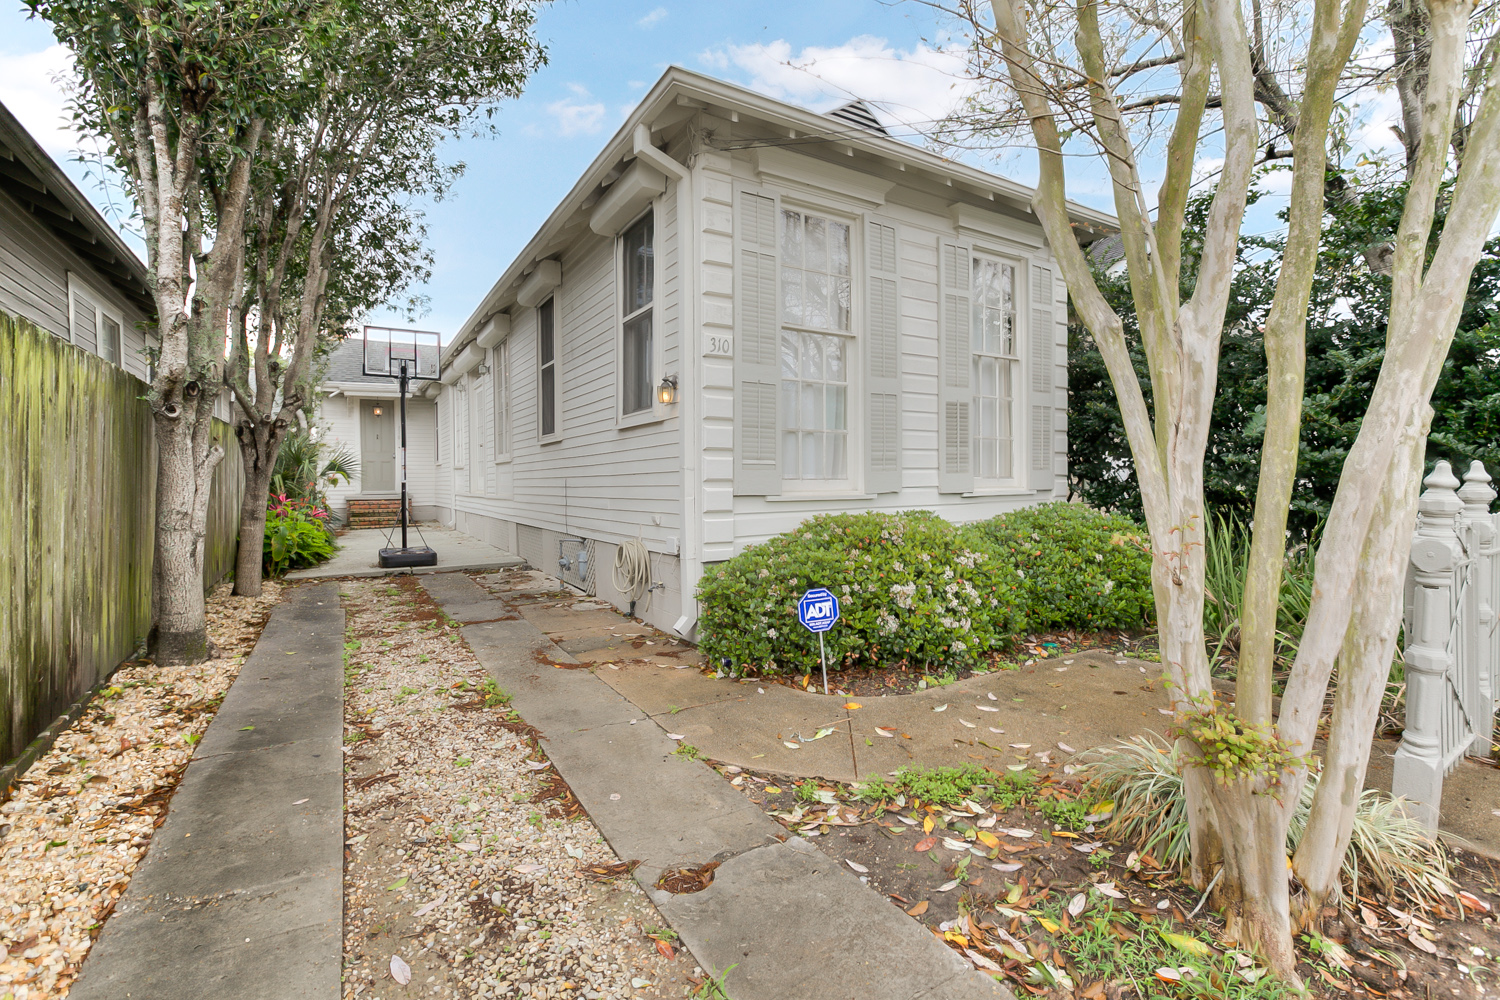 Uptown, House, 2 beds, 1.5 baths, $3300 per month New Orleans Rental - devie image_10